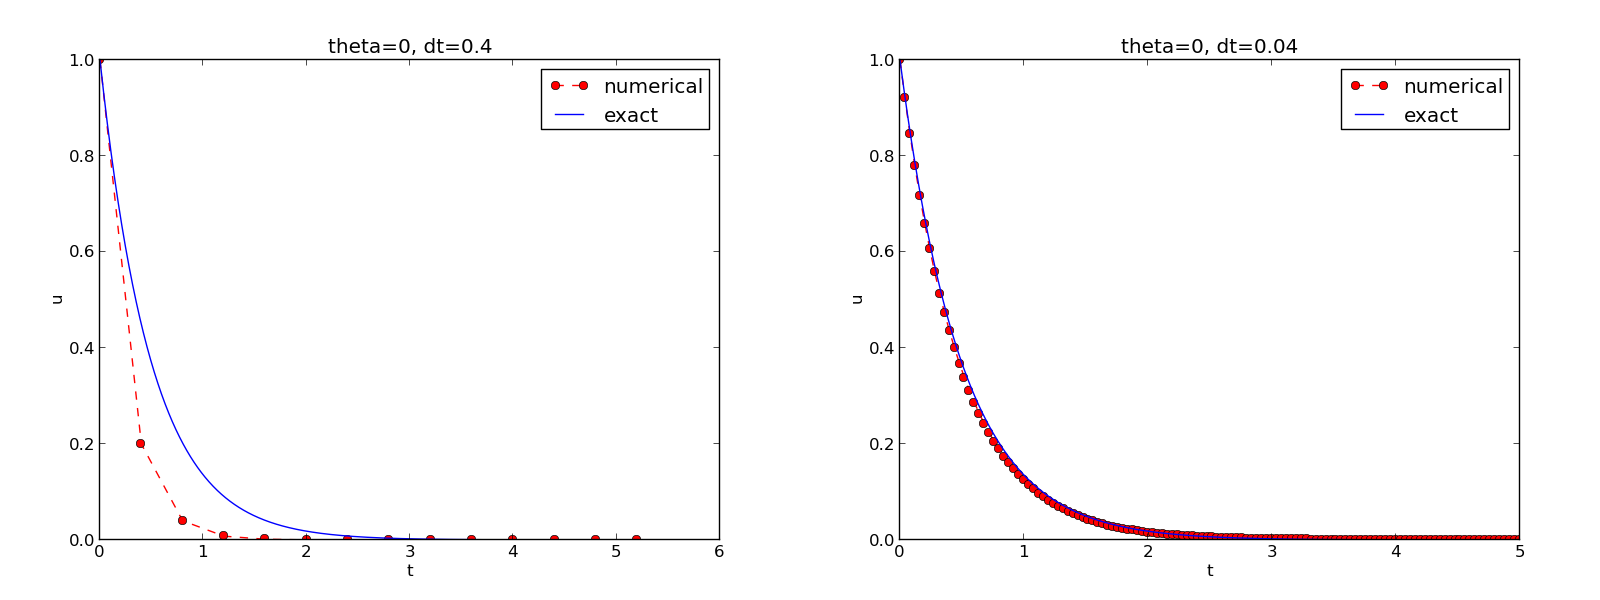 Study guide: Algorithms and implementations for exponential decay models